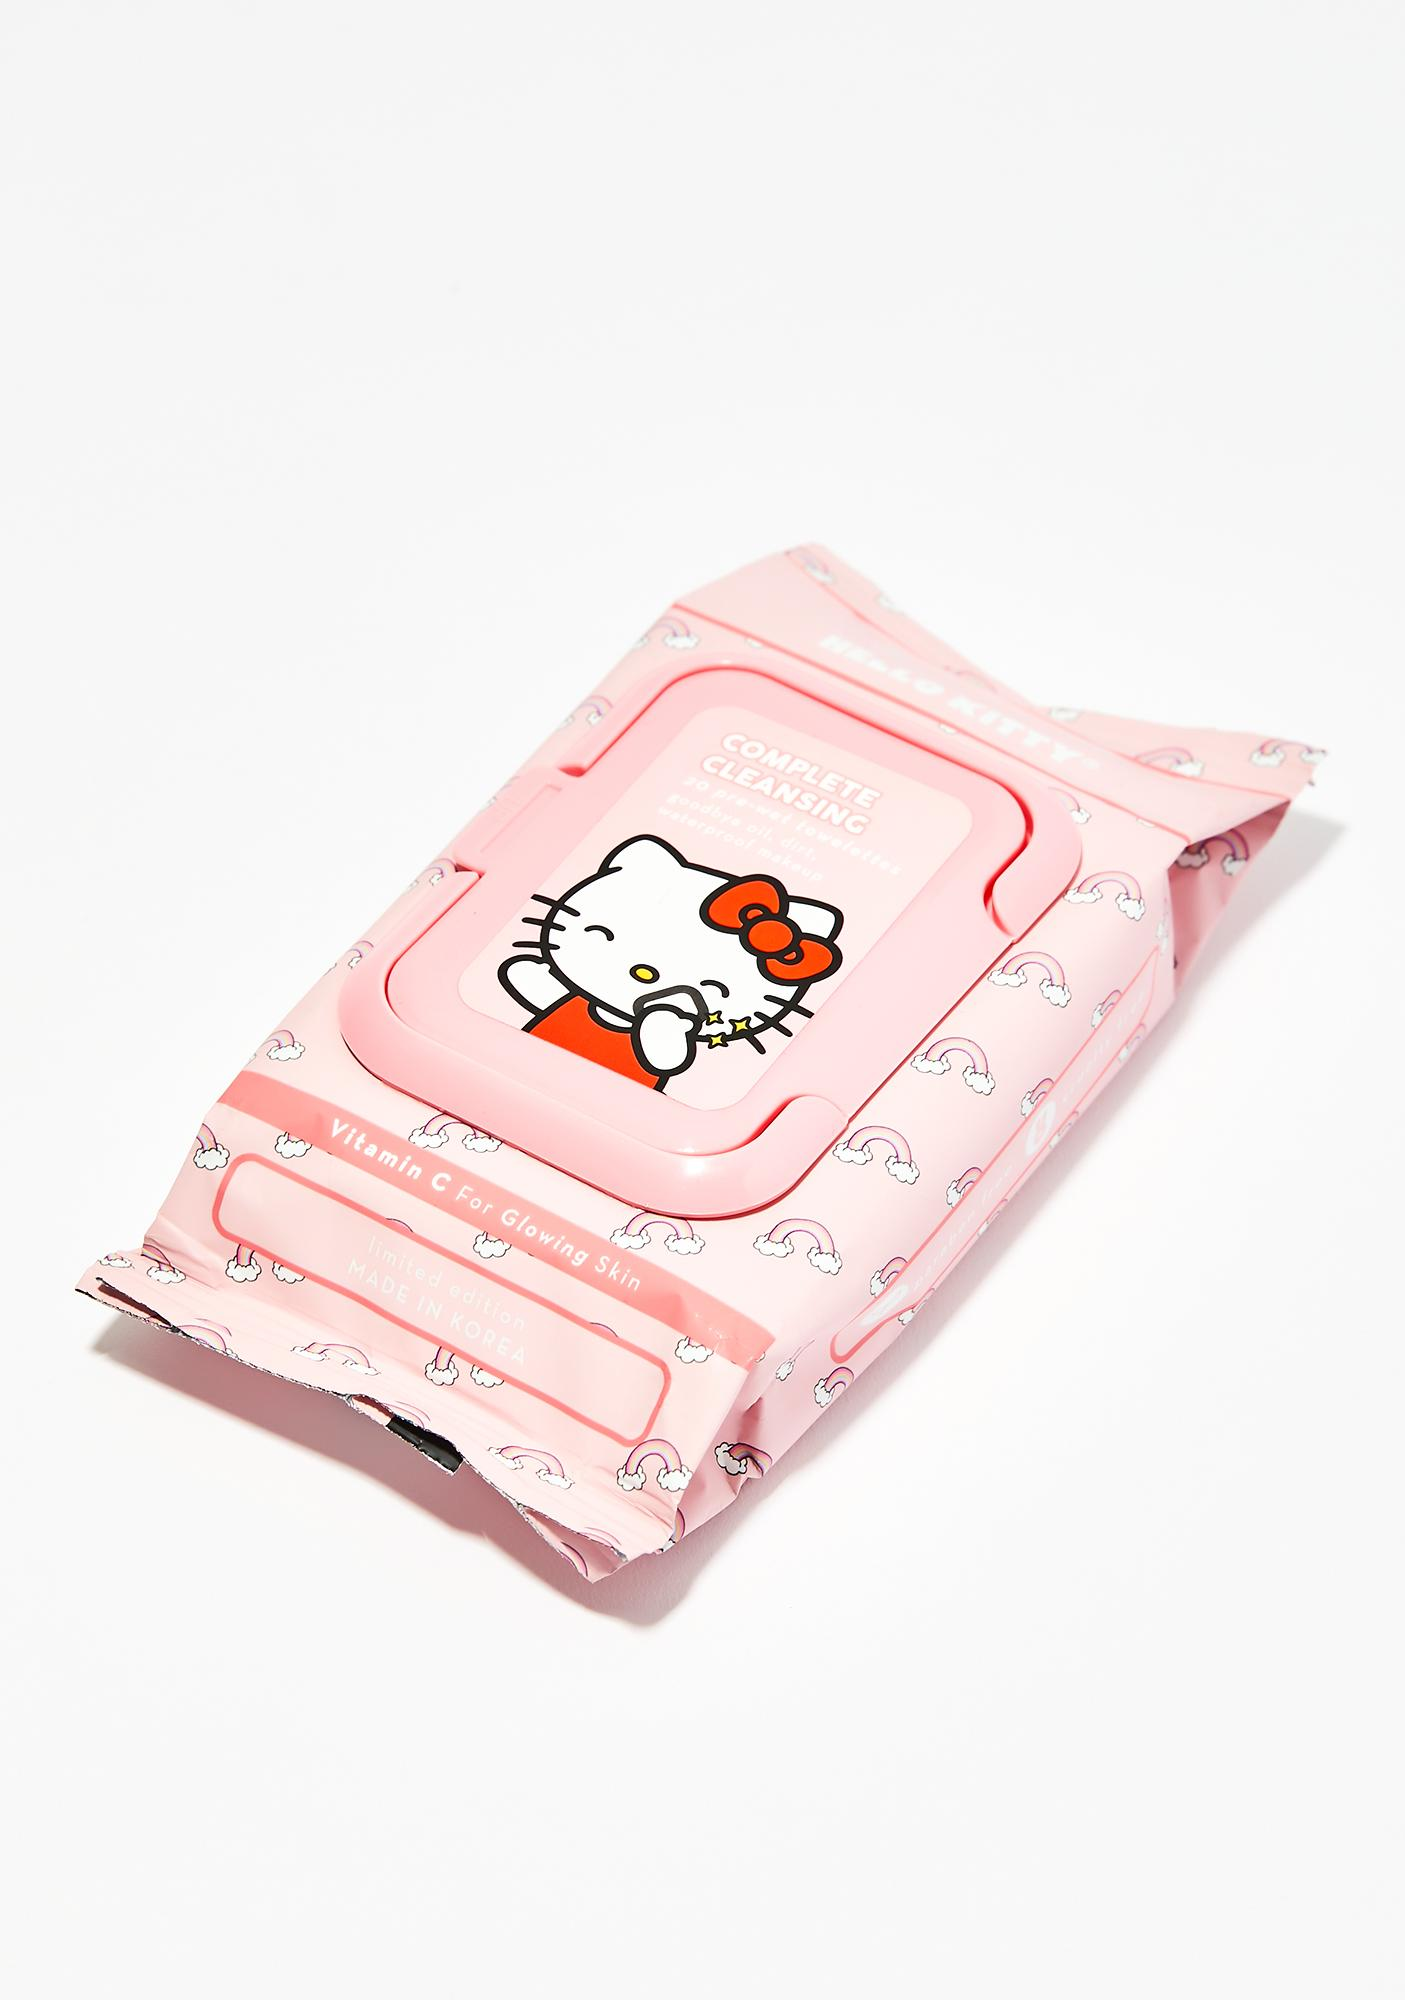 The Crème Shop Hello Kitty Cleansing Towelettes